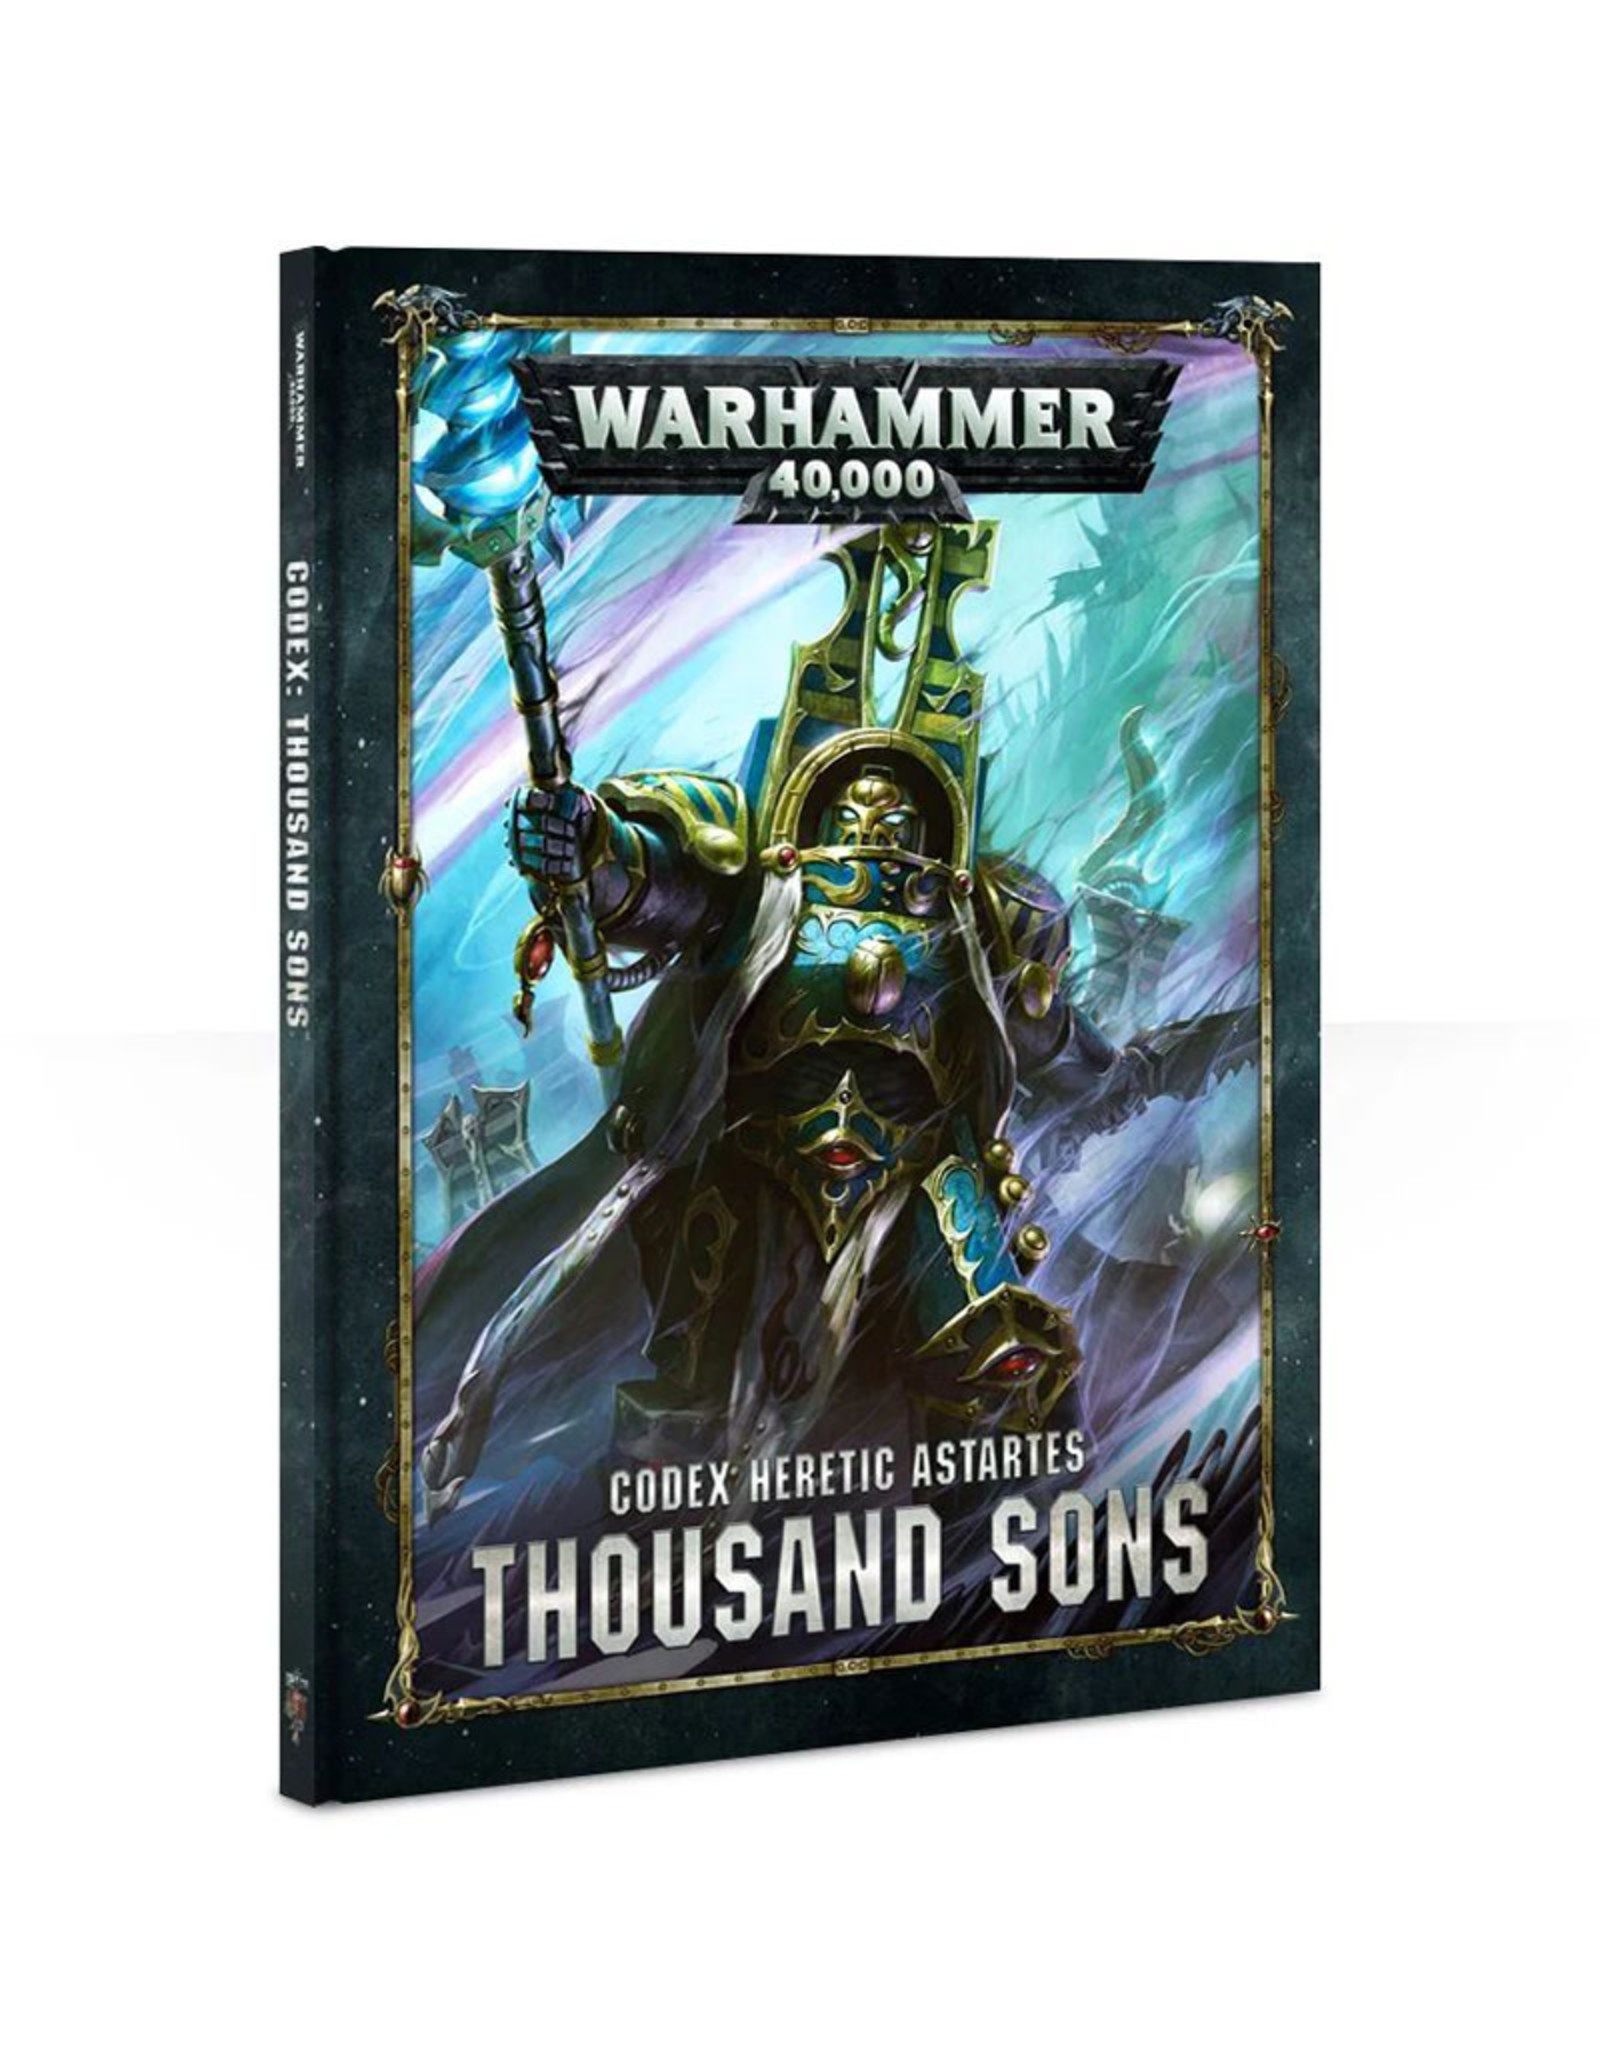 Games Workshop Warhammer 40K Codex Thousand Sons